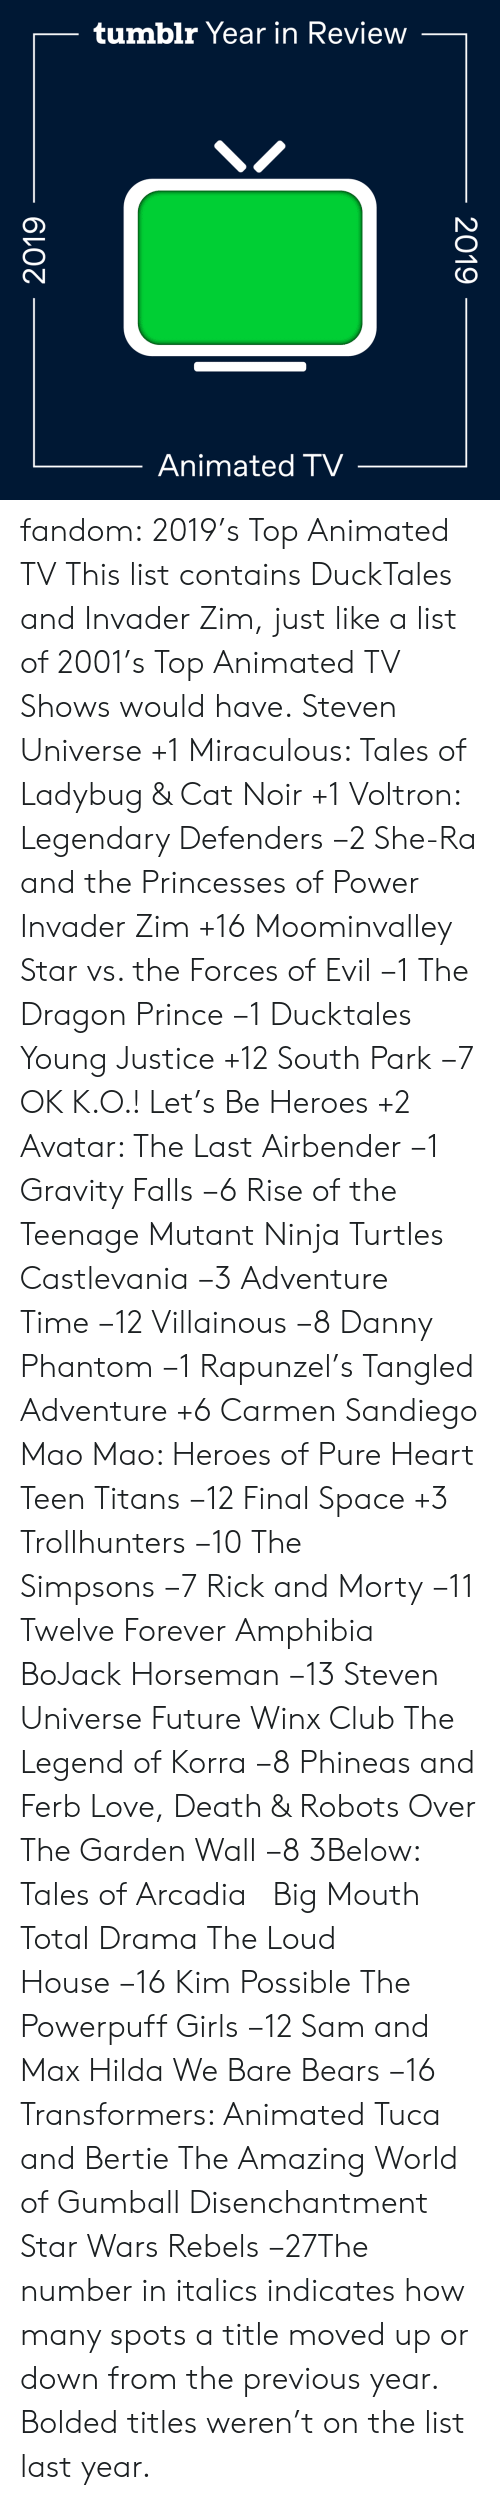 Club, Future, and Gif: tumblr Year in Review  Animated TV  2019  2019 fandom:  2019's Top Animated TV  This list contains DuckTales and Invader Zim, just like a list of 2001's Top Animated TV Shows would have.  Steven Universe +1  Miraculous: Tales of Ladybug & Cat Noir +1  Voltron: Legendary Defenders −2  She-Ra and the Princesses of Power   Invader Zim +16  Moominvalley  Star vs. the Forces of Evil −1  The Dragon Prince −1  Ducktales  Young Justice +12  South Park −7  OK K.O.! Let's Be Heroes +2  Avatar: The Last Airbender −1  Gravity Falls −6  Rise of the Teenage Mutant Ninja Turtles  Castlevania −3  Adventure Time −12  Villainous −8  Danny Phantom −1  Rapunzel's Tangled Adventure +6  Carmen Sandiego  Mao Mao: Heroes of Pure Heart  Teen Titans −12  Final Space +3  Trollhunters −10  The Simpsons −7  Rick and Morty −11  Twelve Forever  Amphibia  BoJack Horseman −13  Steven Universe Future  Winx Club  The Legend of Korra −8  Phineas and Ferb  Love, Death & Robots  Over The Garden Wall −8  3Below: Tales of Arcadia    Big Mouth  Total Drama  The Loud House −16  Kim Possible  The Powerpuff Girls −12  Sam and Max  Hilda  We Bare Bears −16  Transformers: Animated  Tuca and Bertie  The Amazing World of Gumball  Disenchantment Star Wars Rebels −27The number in italics indicates how many spots a title moved up or down from the previous year. Bolded titles weren't on the list last year.